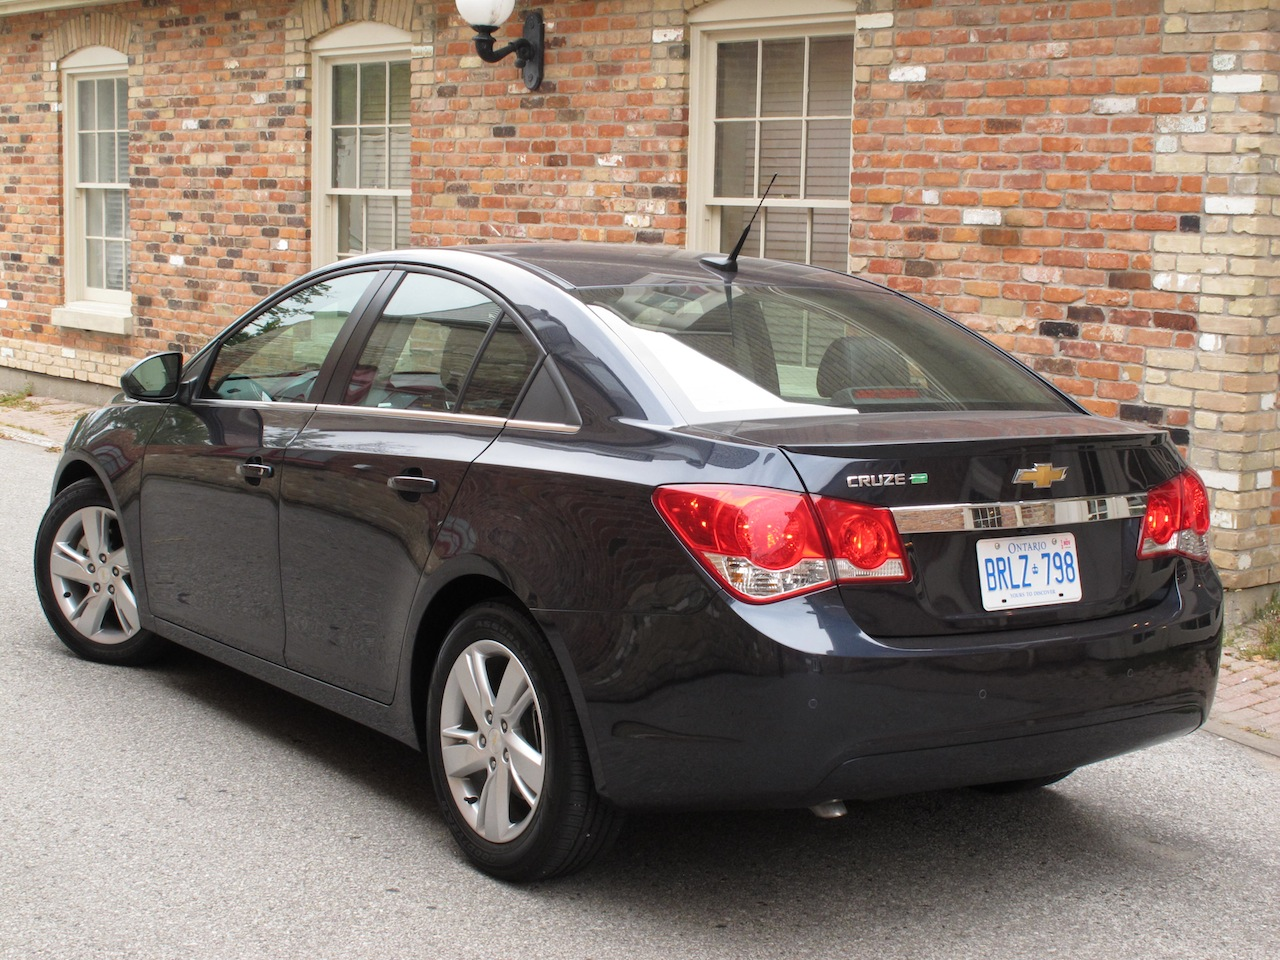 2014 chevrolet cruze diesel review cars photos test drives and reviews canadian auto. Black Bedroom Furniture Sets. Home Design Ideas